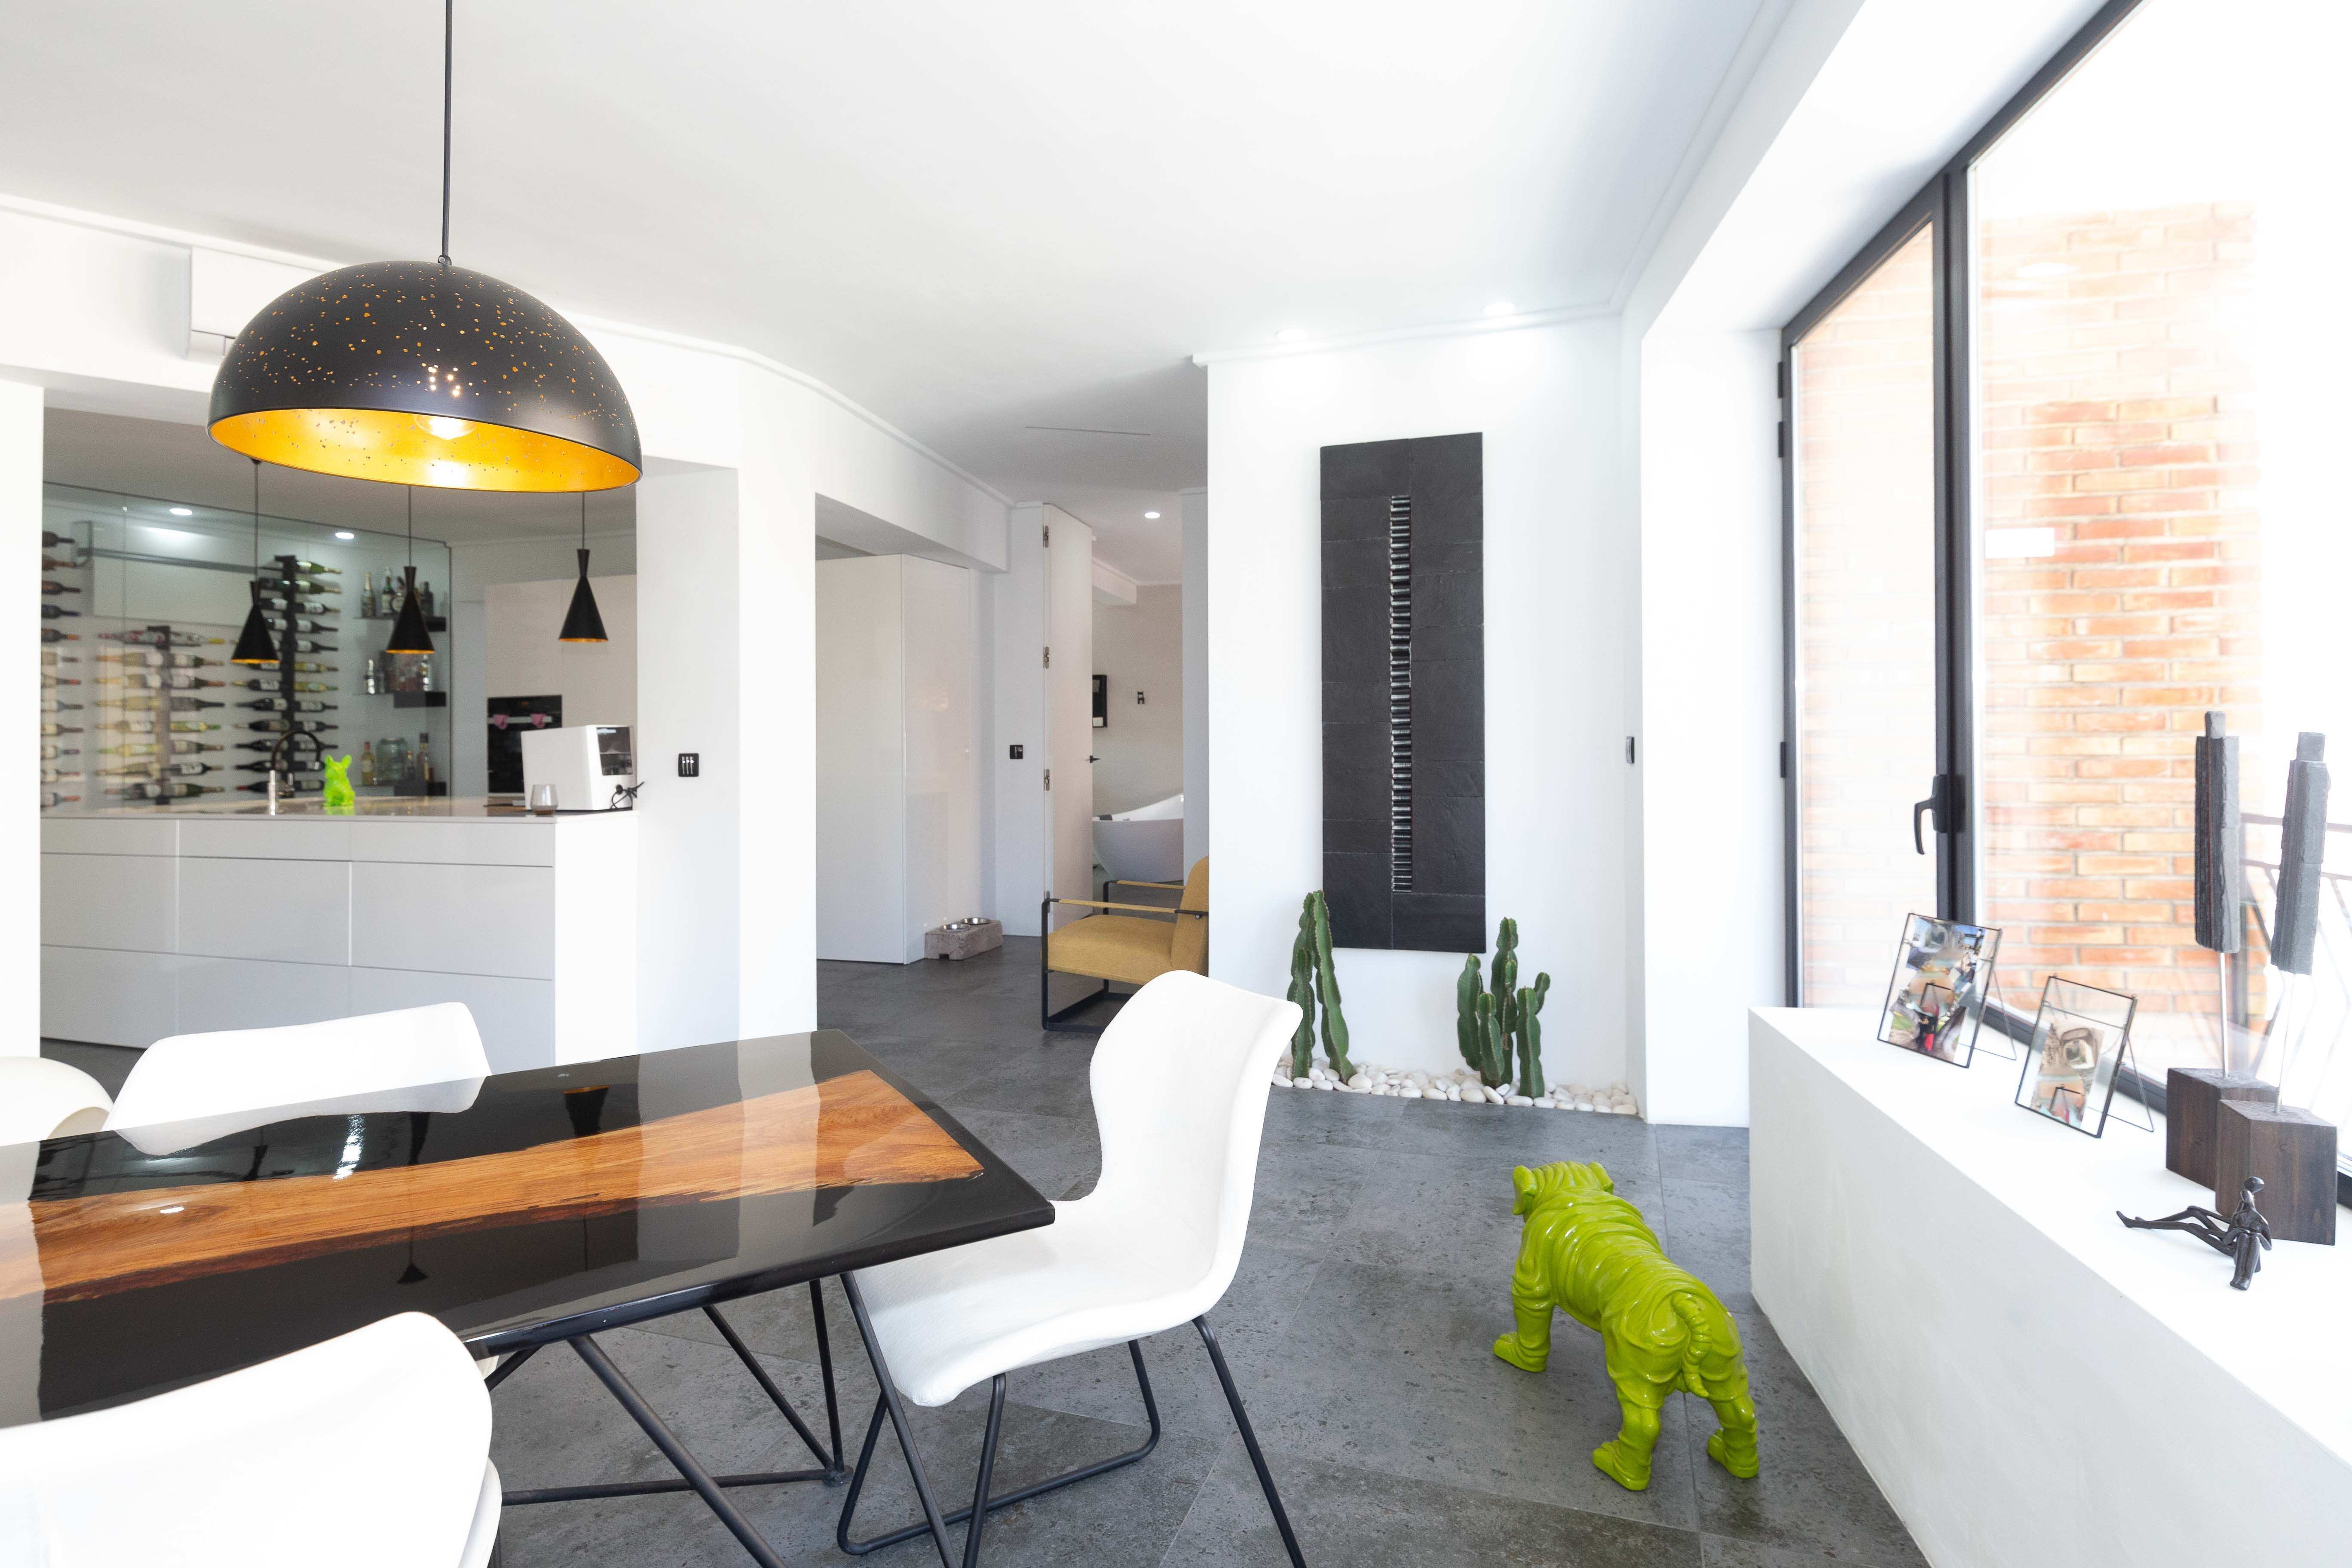 Photogallery - 9 - Vives Pons Homes